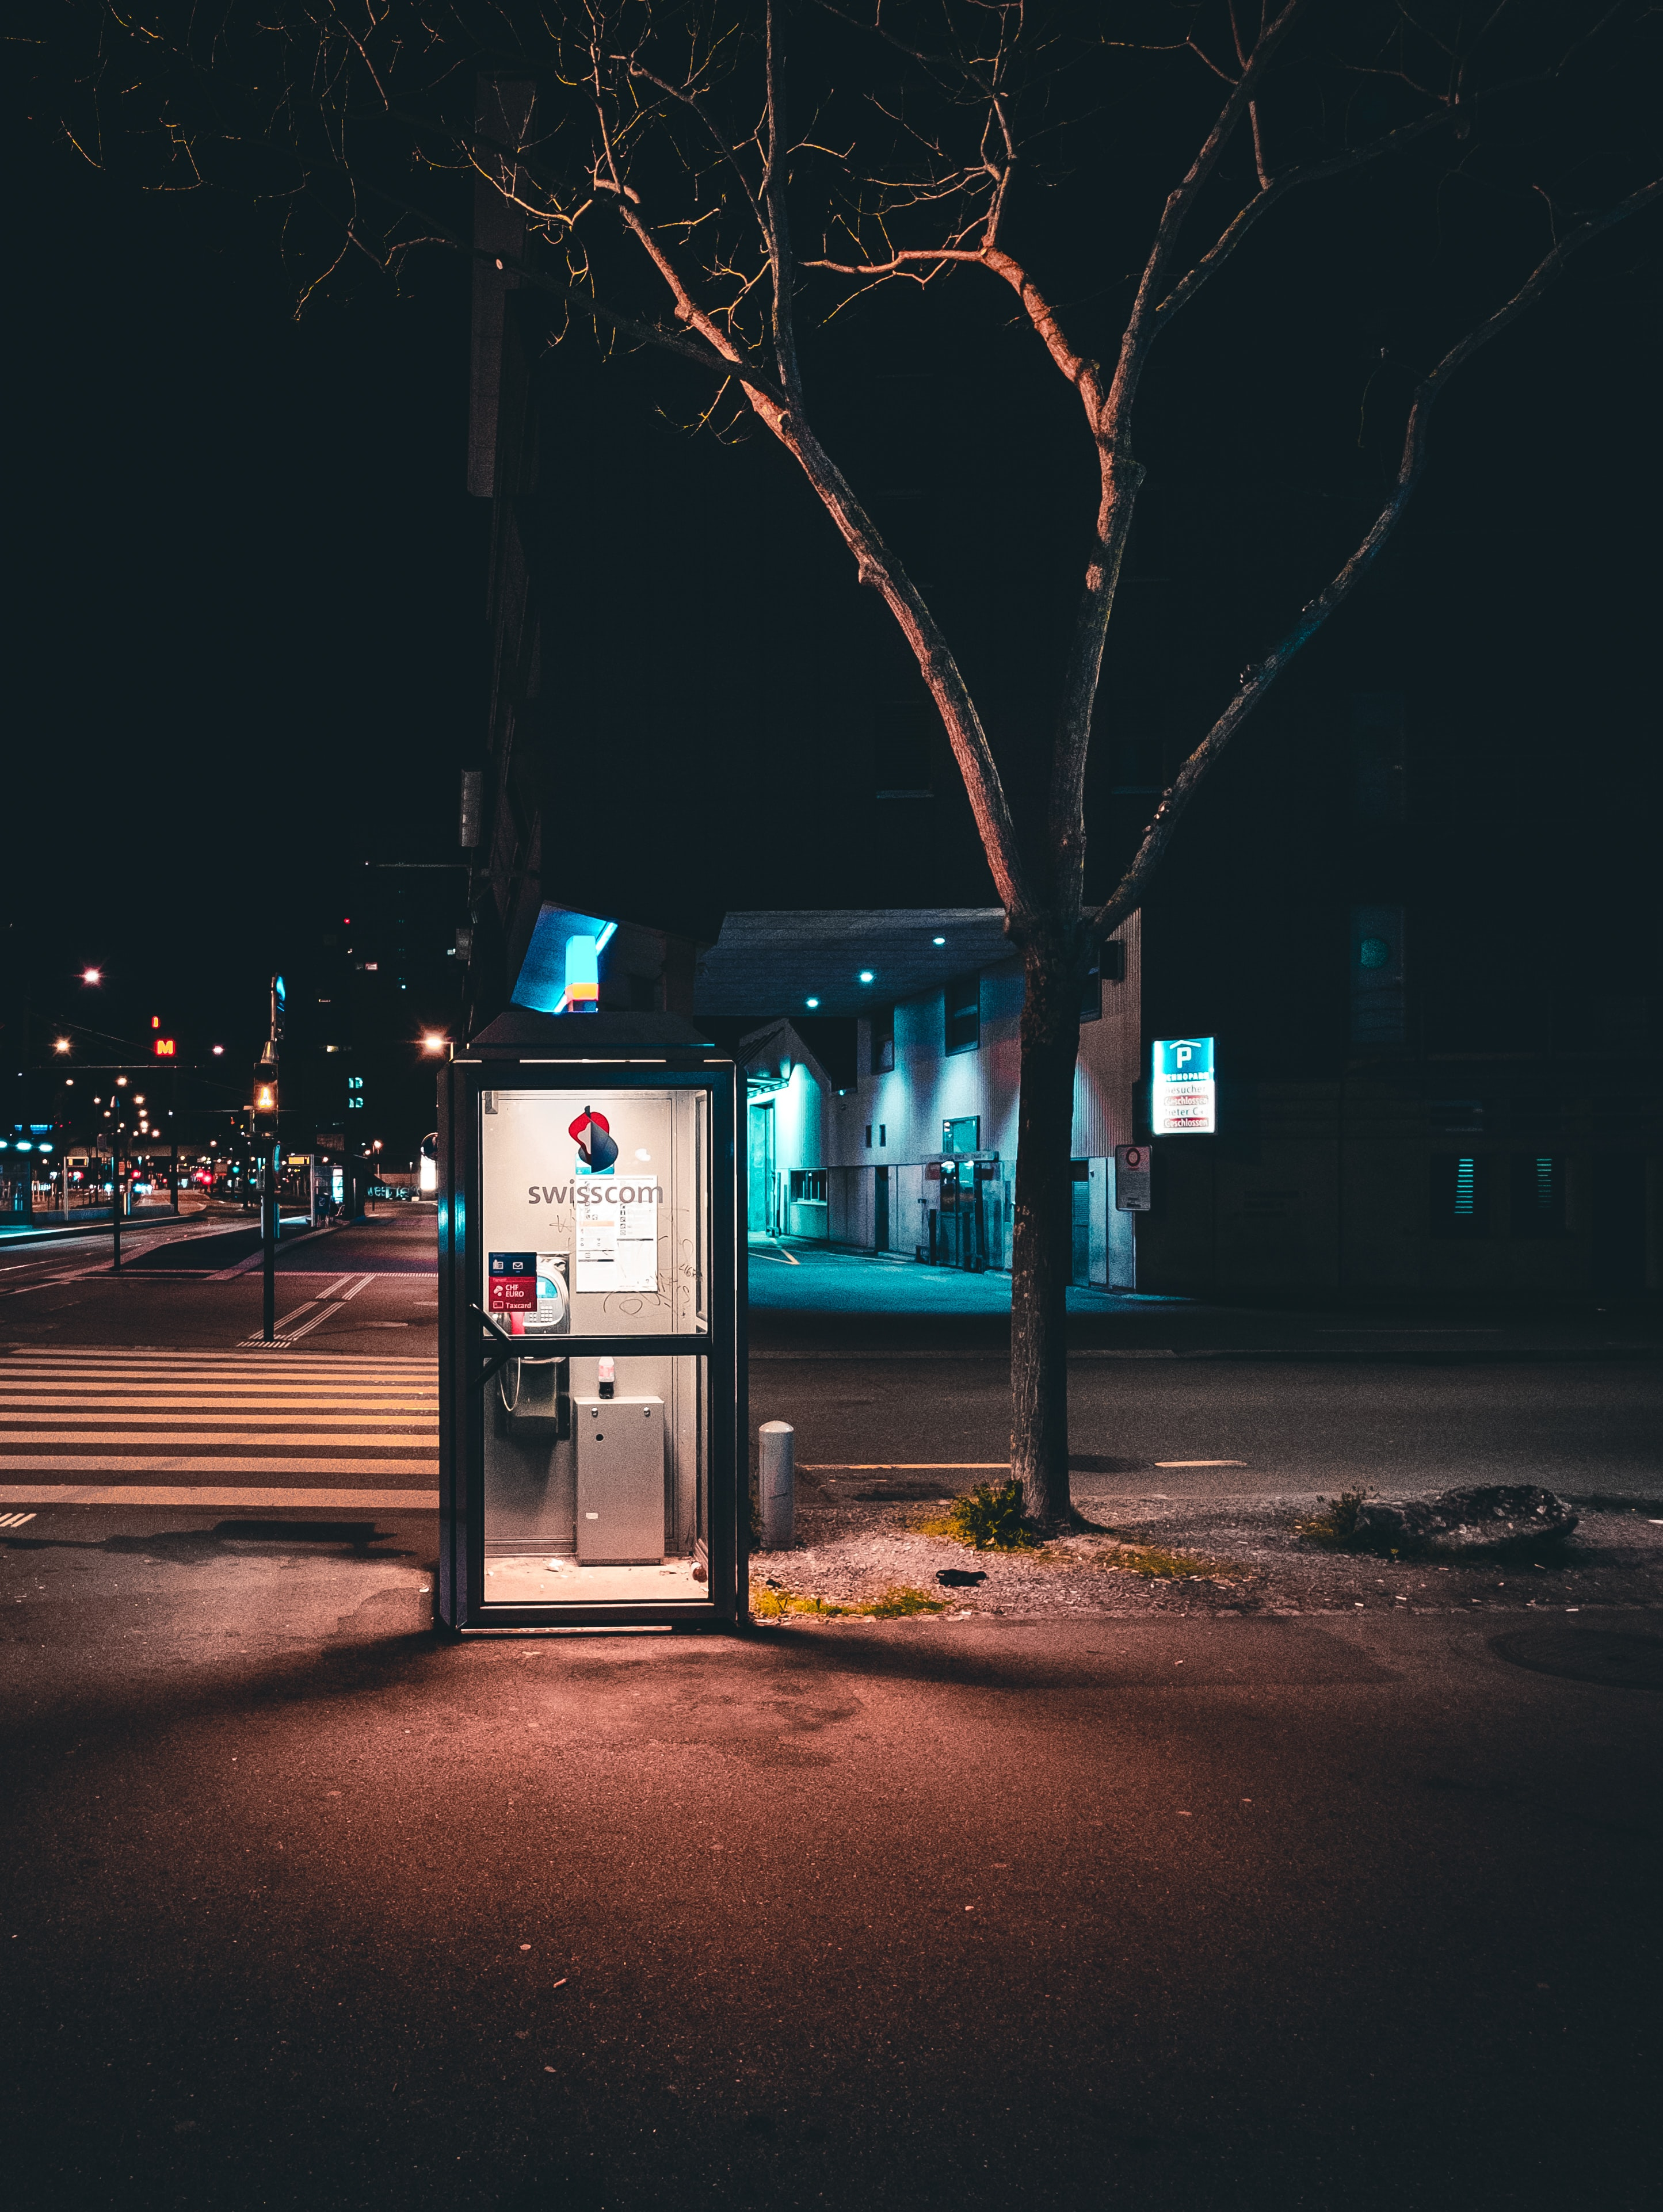 black lighted telephone booth near tree at nighttime photography